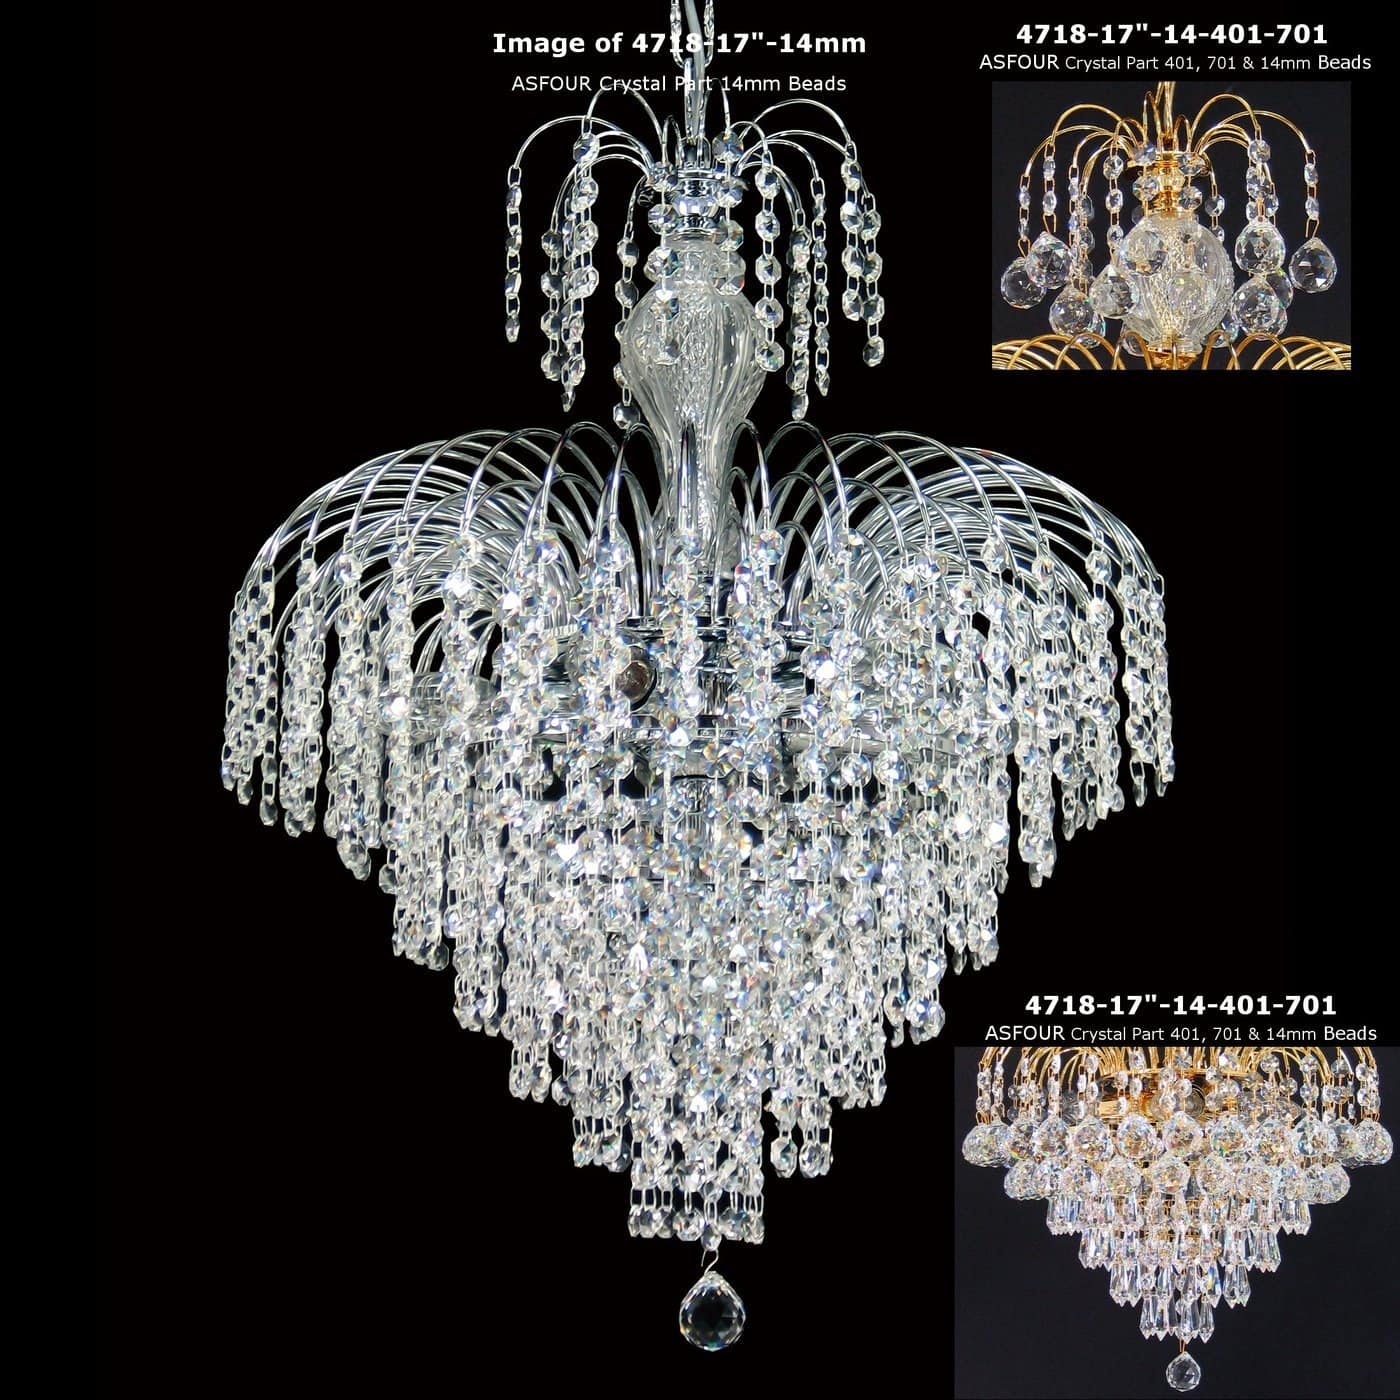 Asfour crystal light by chic chandeliers 7 light 17 asfour lead crystal 24ct gold plated waterfall chandelier wprisma and balls chrome aloadofball Gallery